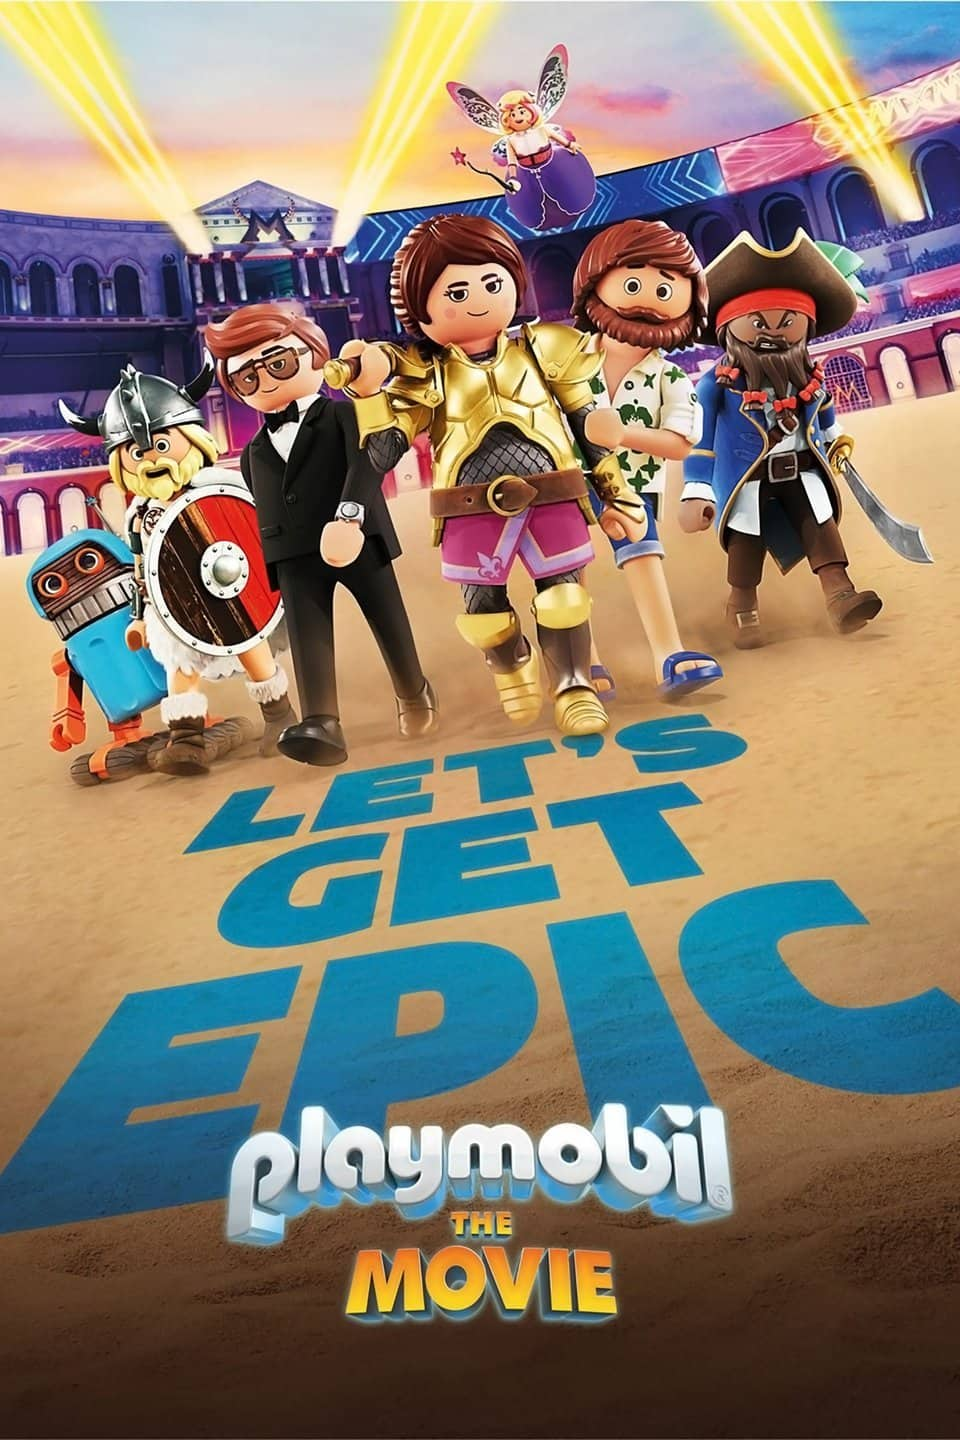 Playmobil: The Movie Tickets are $5